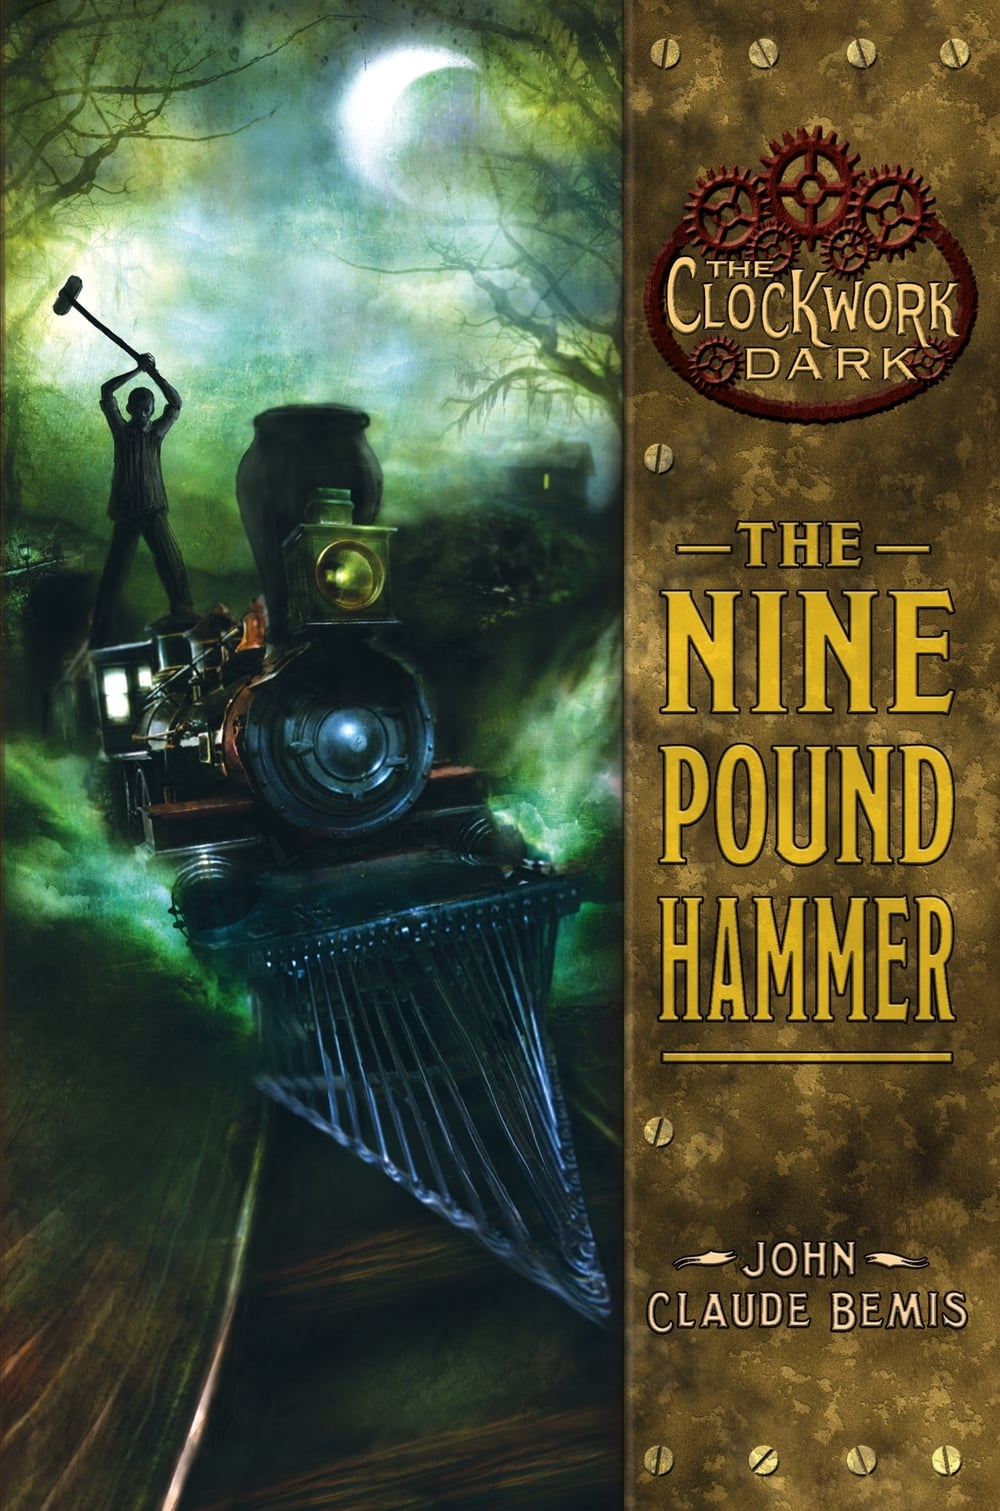 THE NINE POUND HAMMER